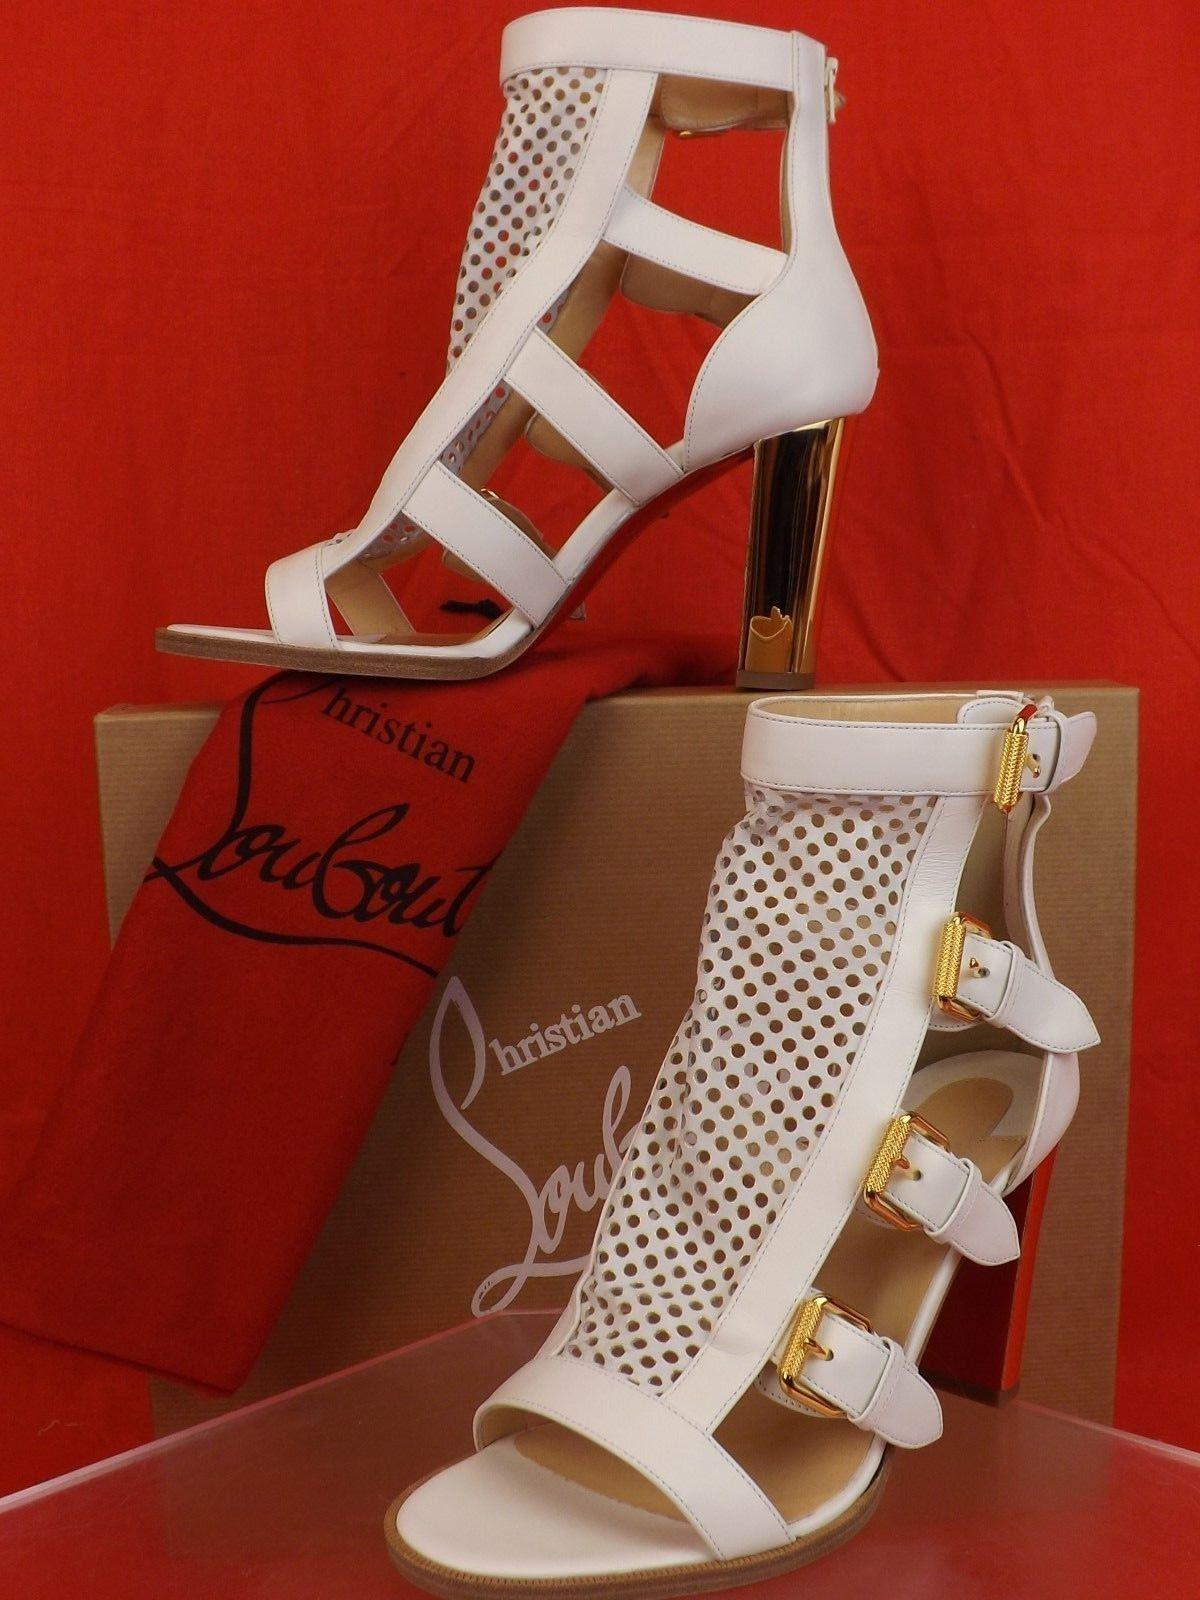 cf195728011 ... Christian Louboutin White Fencing 85 Latte Perforated Perforated  Perforated Leather Buckles Mirror Heel Pumps Size EU ...